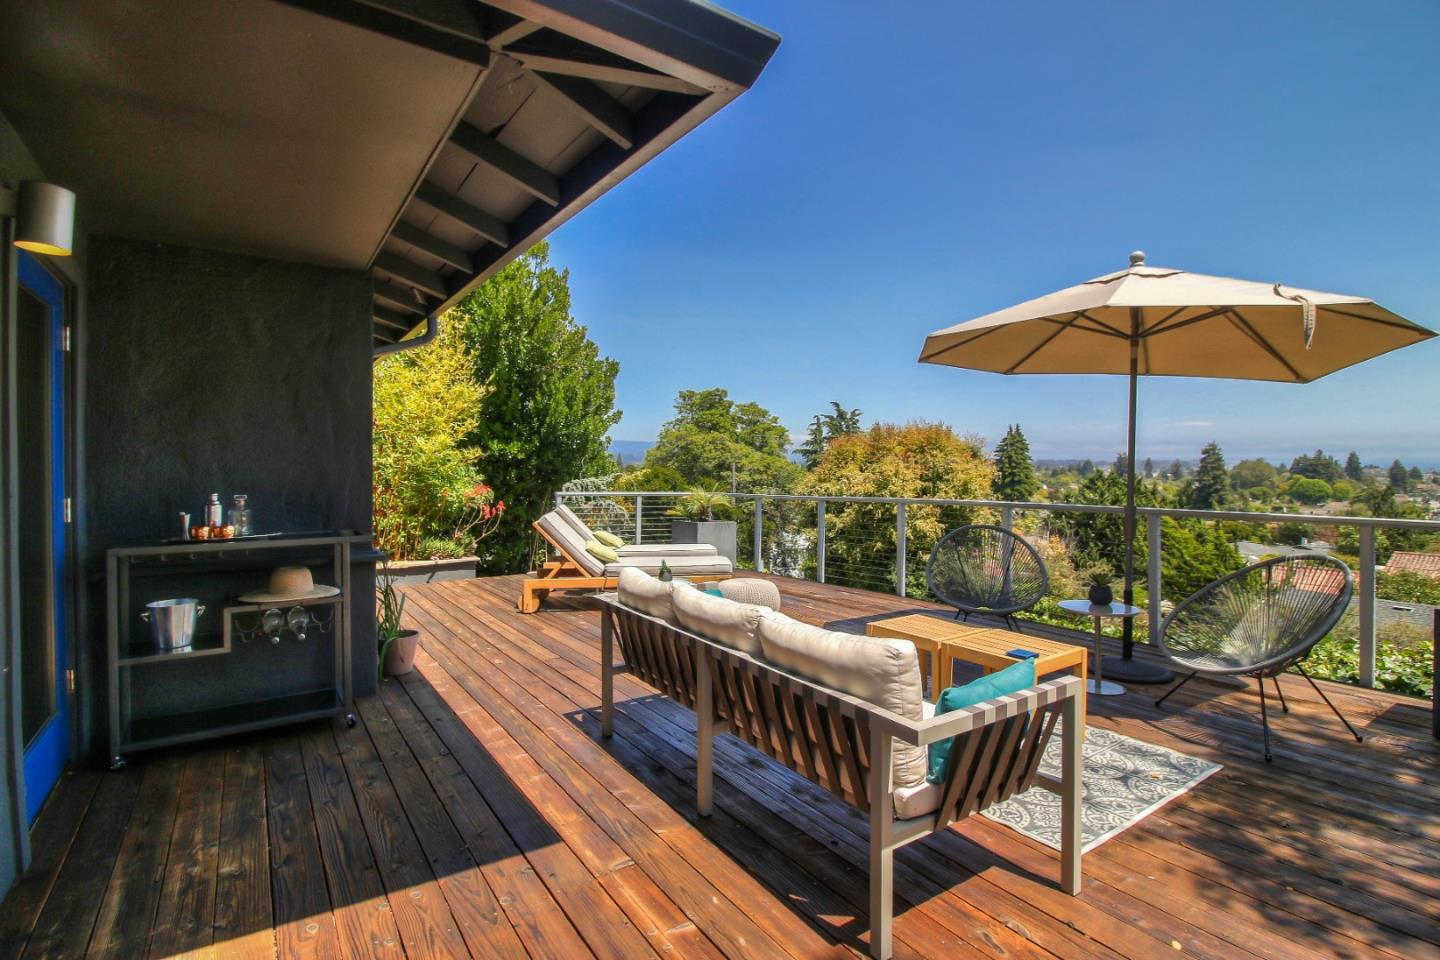 This prime property on the upper side of Escalona Drive has incredible views of the city and the bay. Architect-designed and managed remodel will knock your socks off (in case the view didn't already). The interior spaces are modern, comfortable, and happy. The views from the front deck and house are breathtaking. The backyard is inviting and soothing. The house is perfect for enjoying alone and with your family, or entertaining guests. The single-car garage has a motorized lift for a second car.